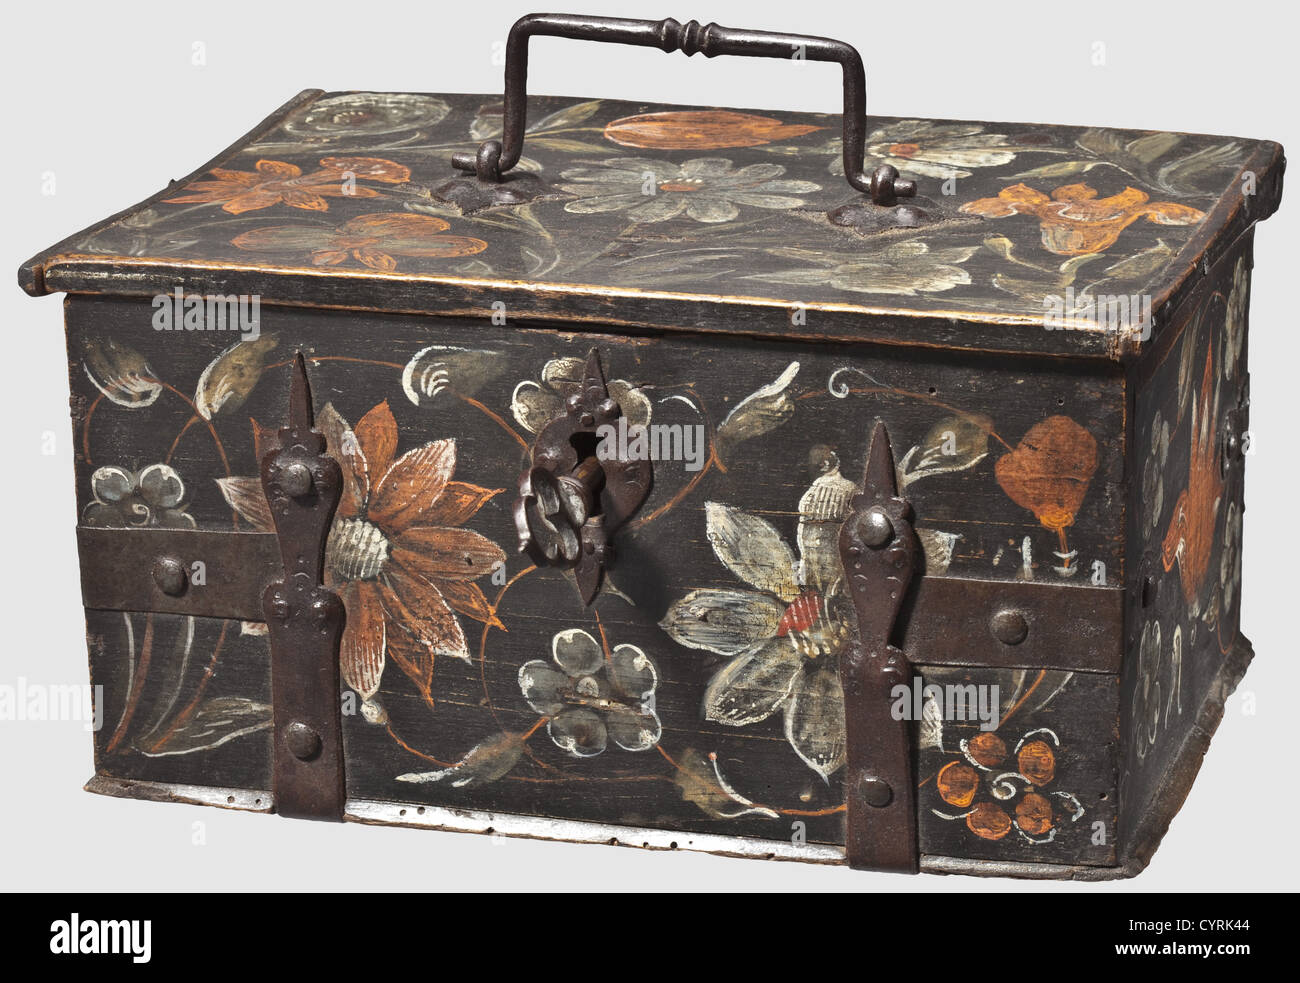 A Swabian painted casket, circa 1700 Body made of reused beech wood from an older casket (ca. 1600) with iron furniture - Stock Image